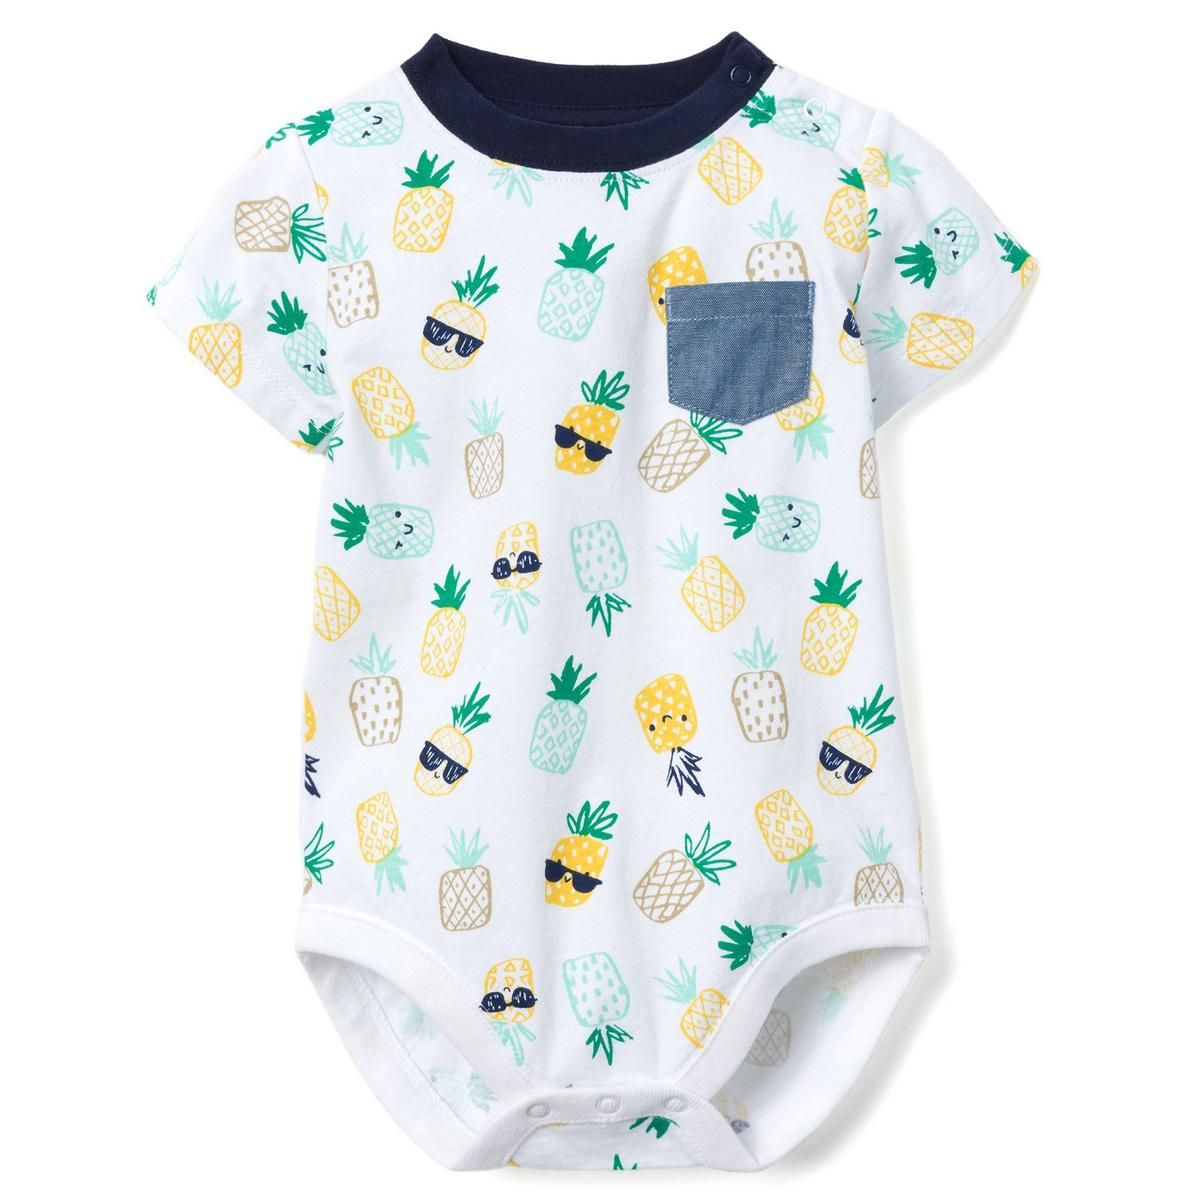 Toddler Infant Baby Kids Girls Pineapple Tops Shirt Pants Outfits Clothes Set